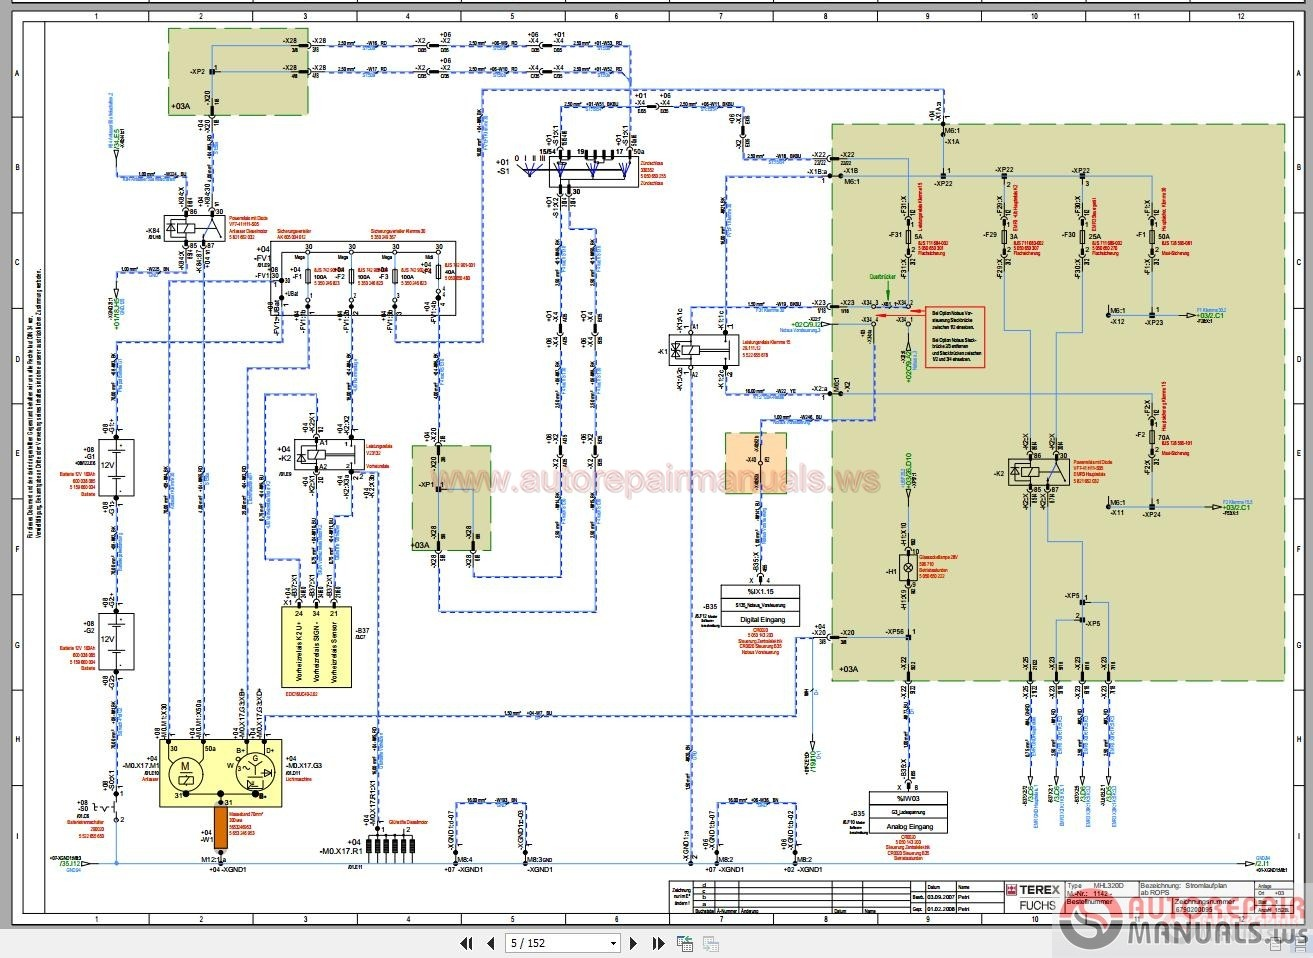 terex wiring diagrams example electrical wiring diagram u2022 rh olkha co Wiring Schematics for Cars HVAC Wiring Schematics